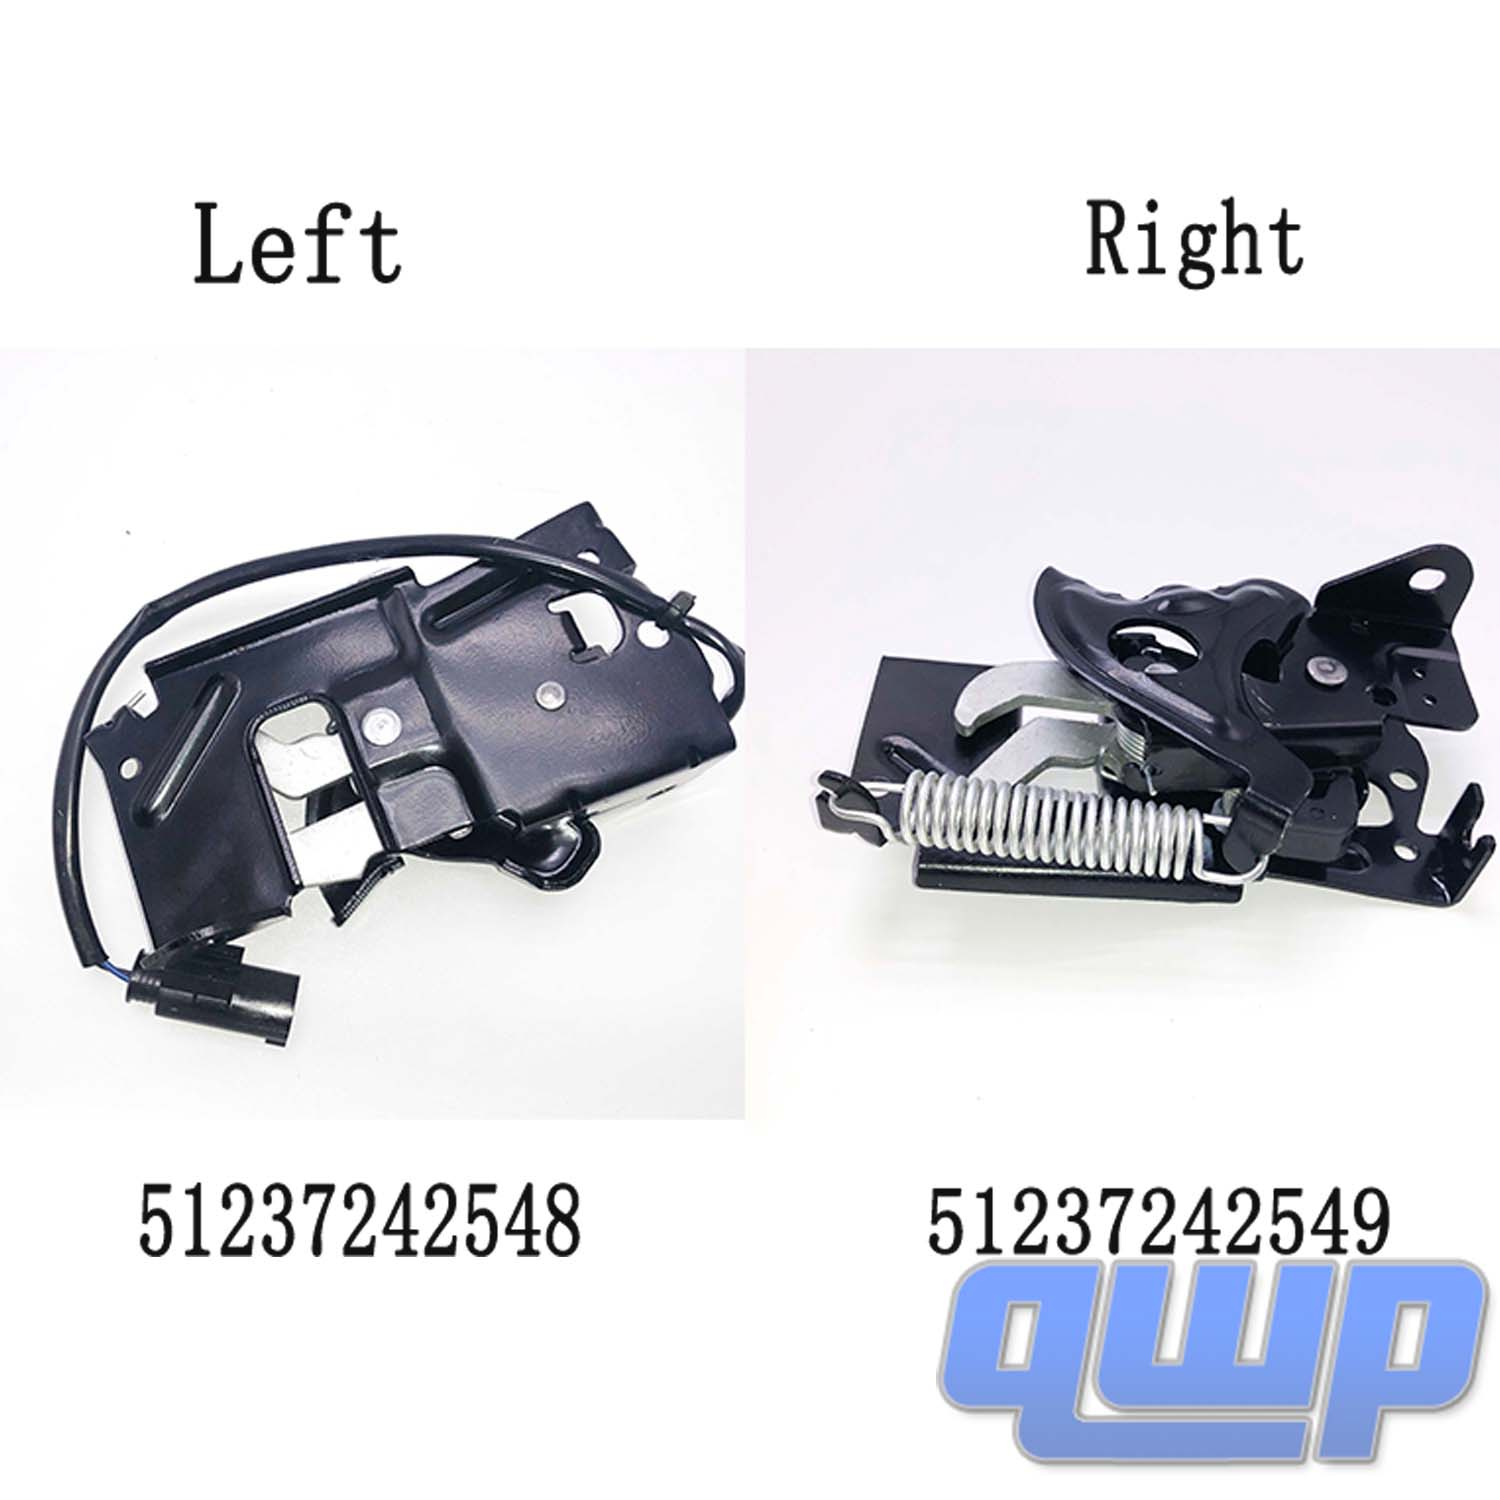 Hood Lock Latch RIGHT for BMW 228 320 328 335 340 428 435 M235 M3 M4 51237242549